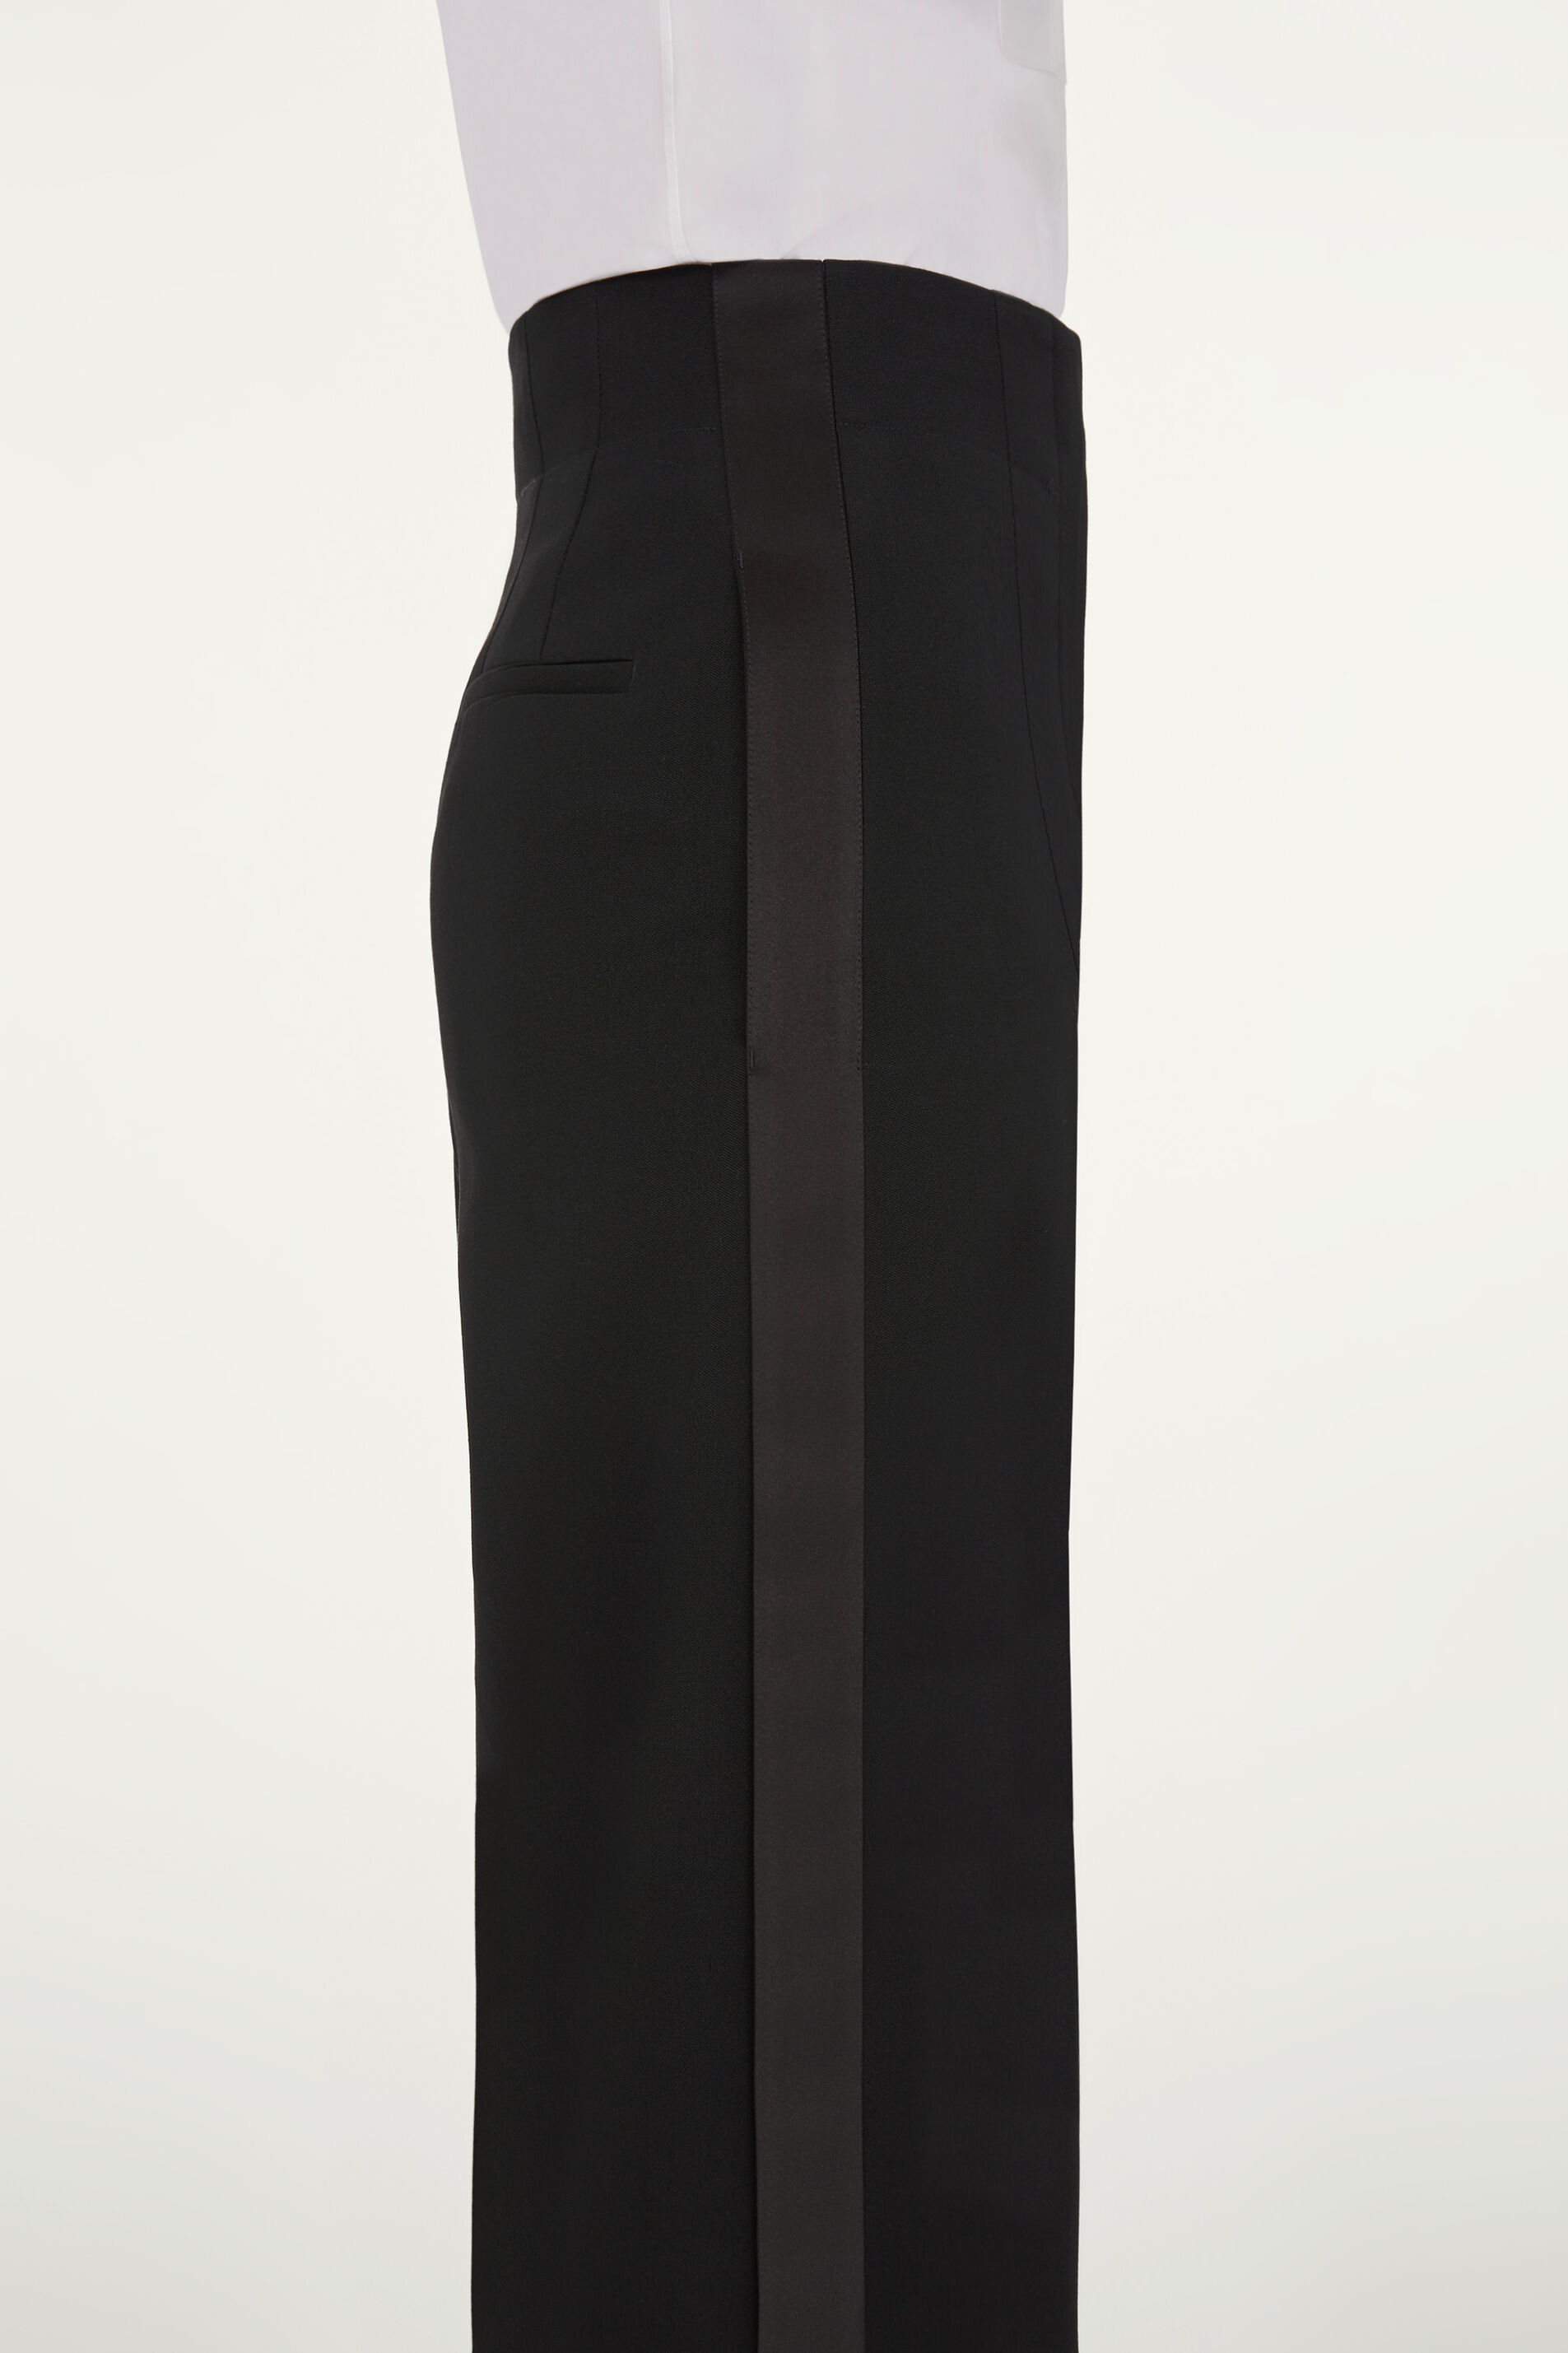 Tuxedo Trousers, black, large